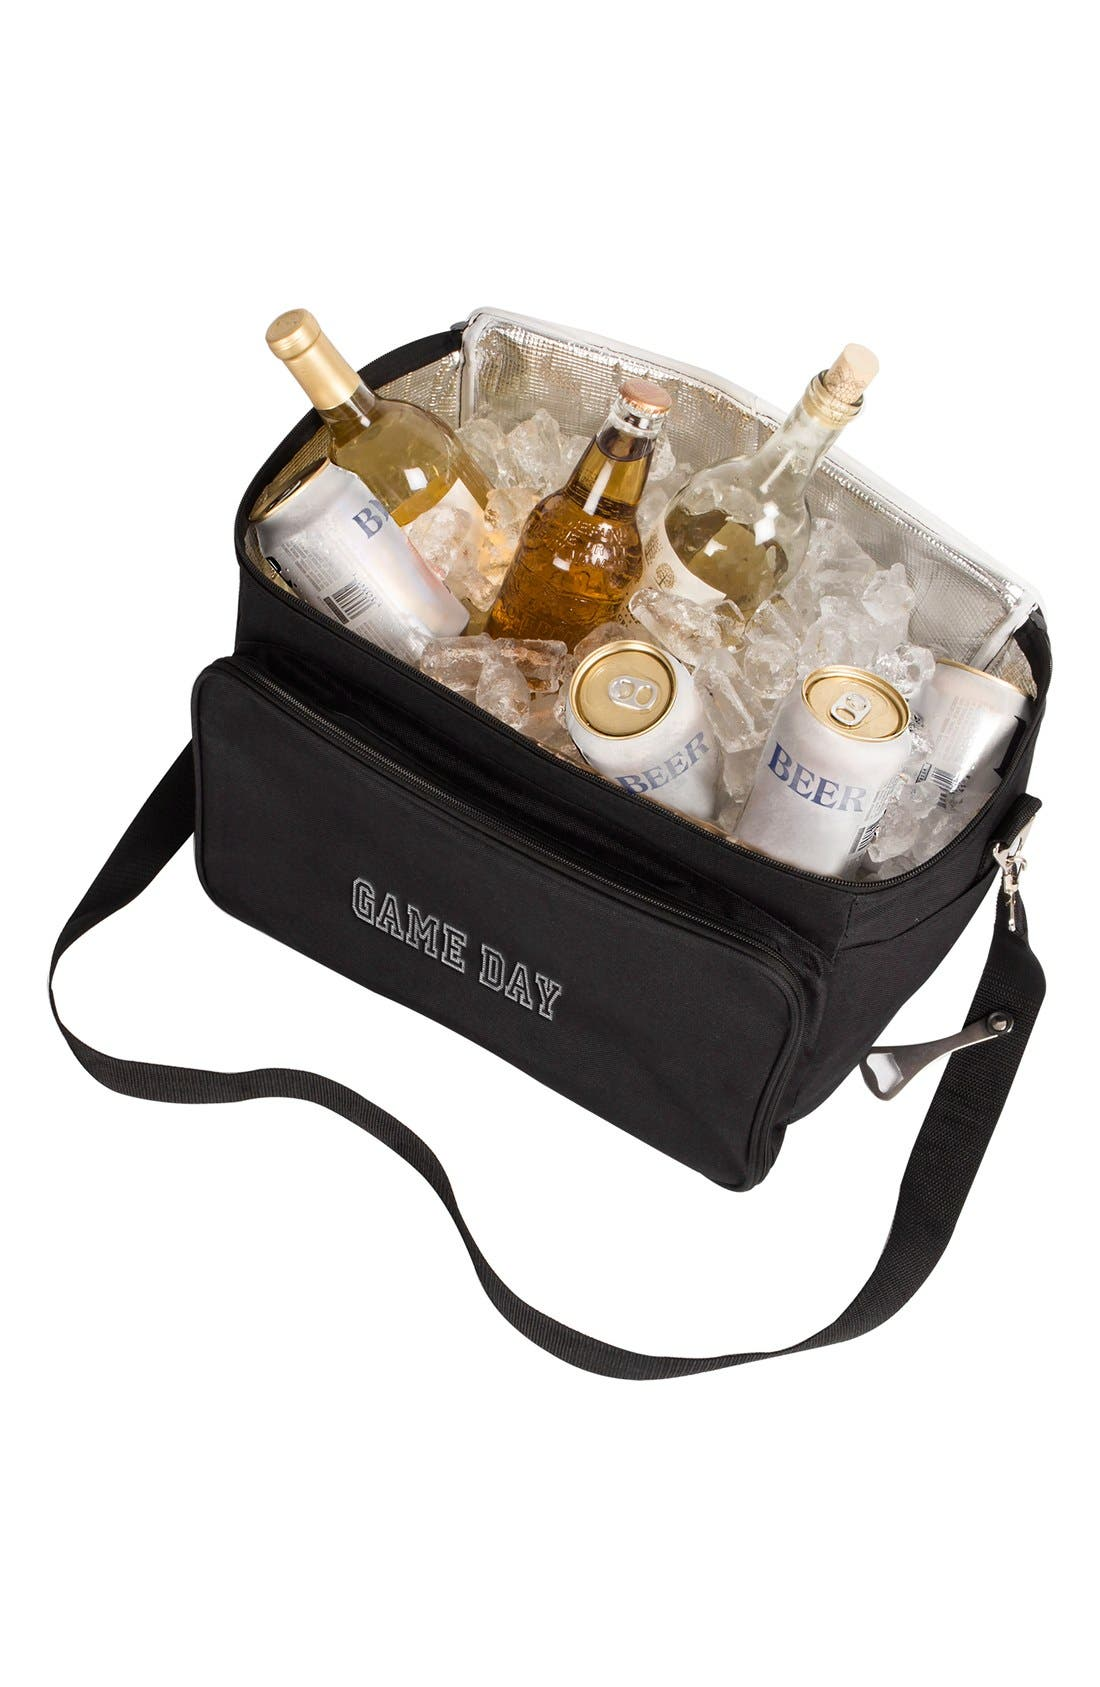 'Game Day' Cooler & BBQ Tool Set,                             Alternate thumbnail 5, color,                             001